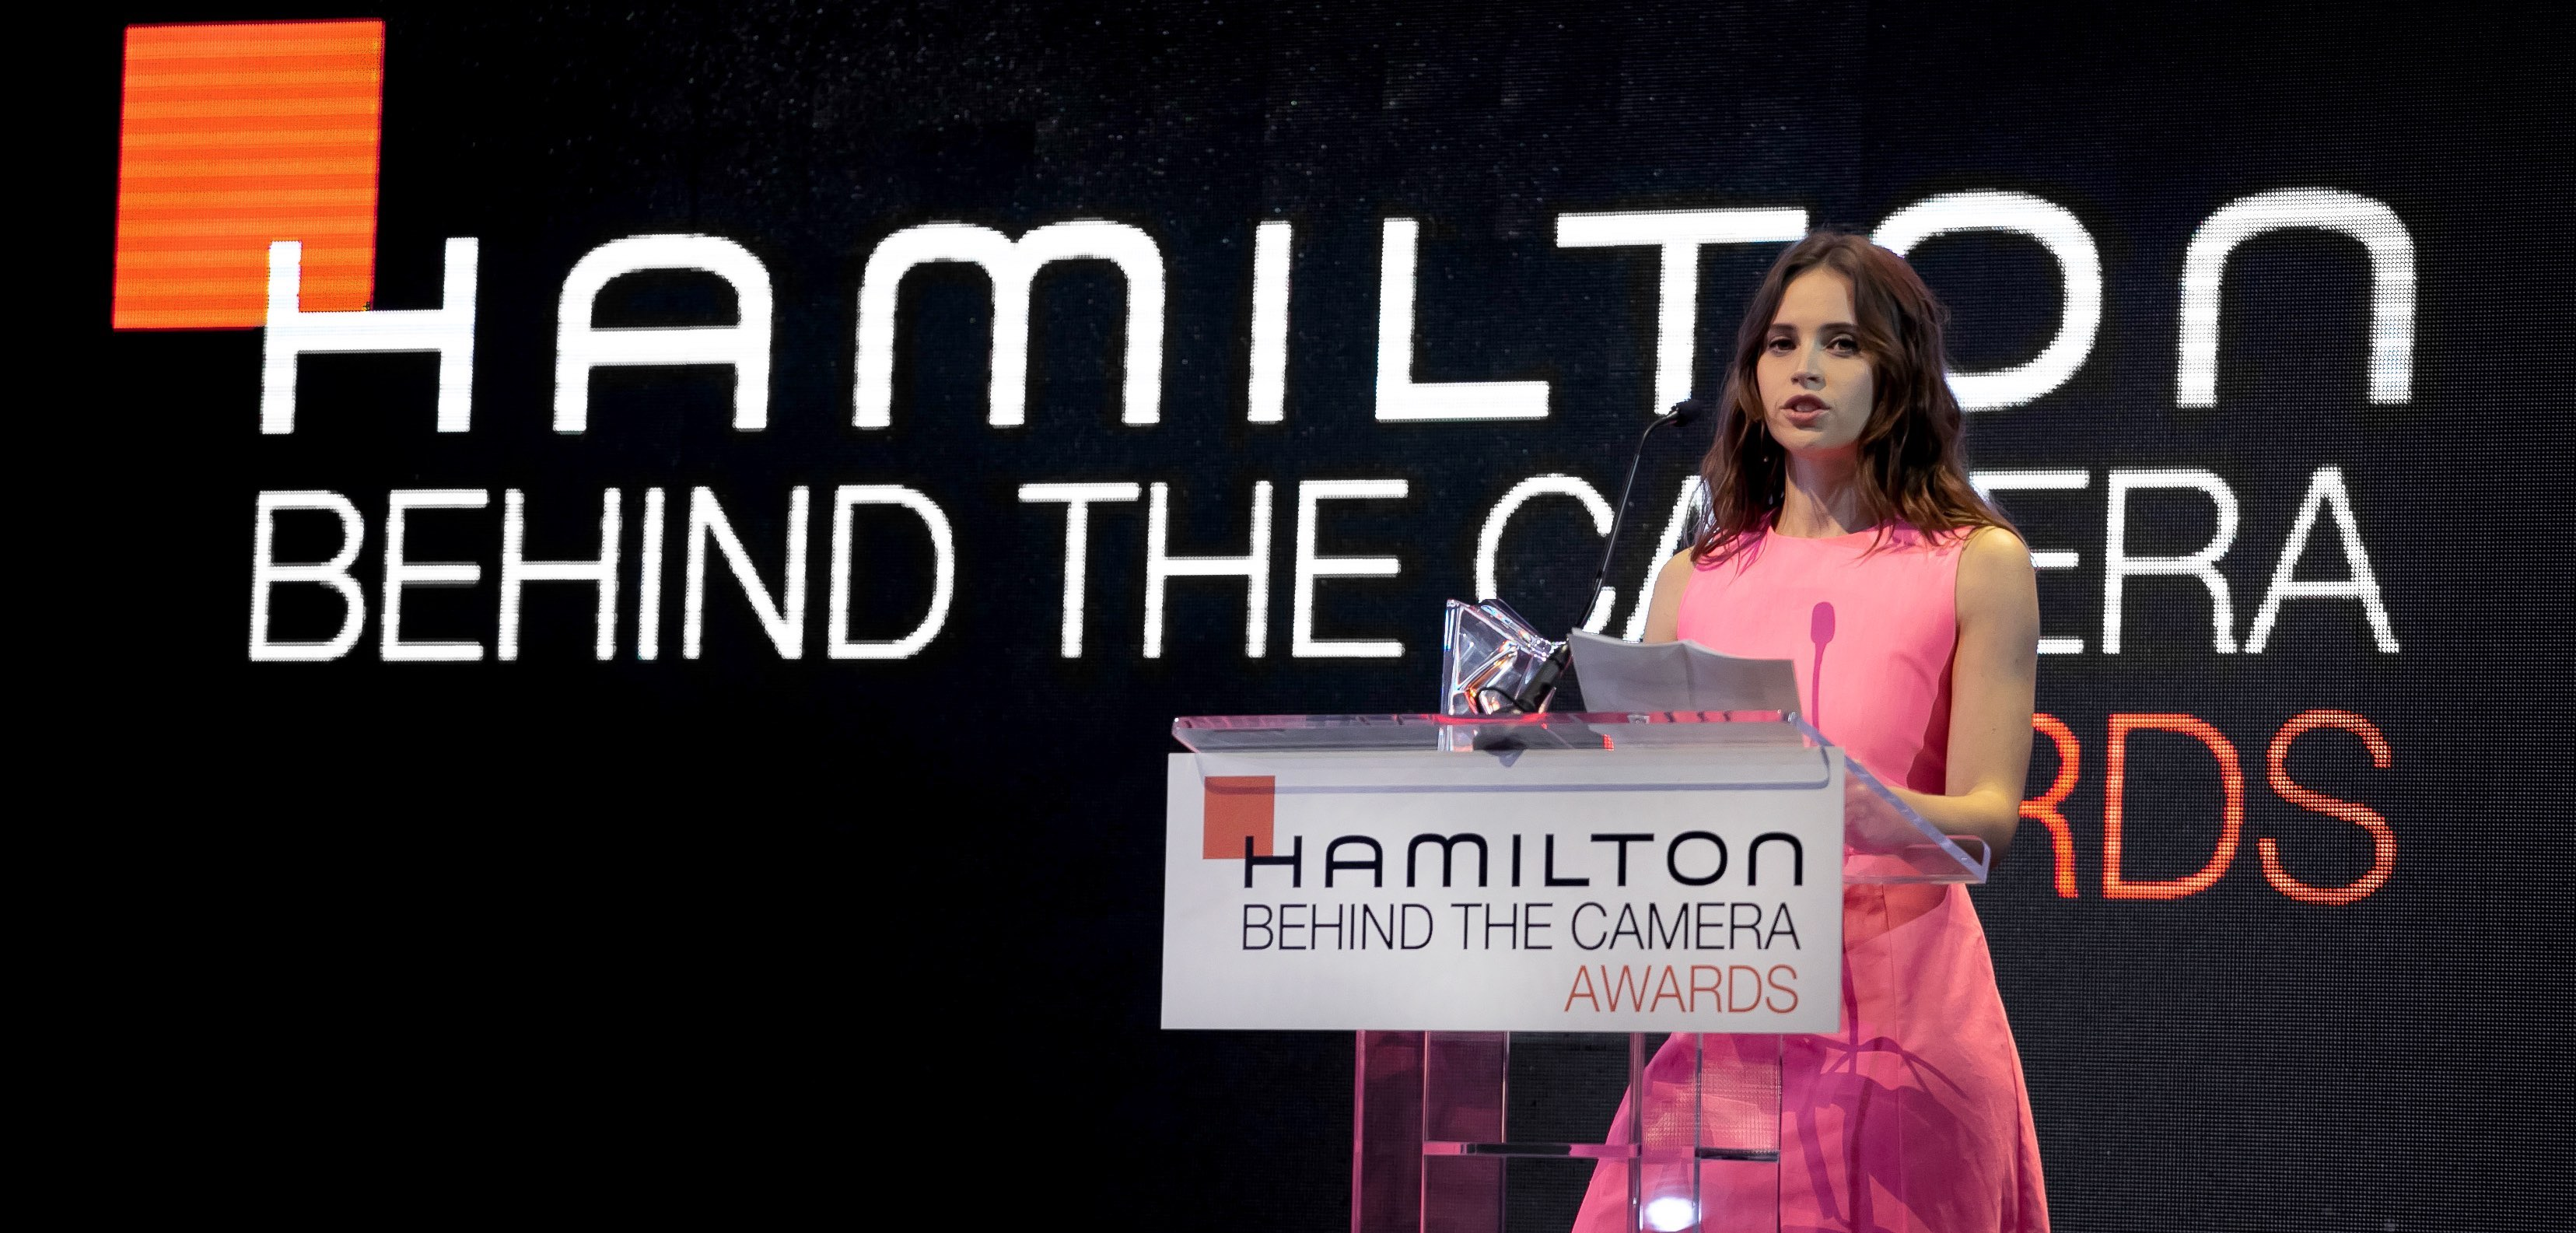 Hamilton Behind the Camera Awards 2018 Cover